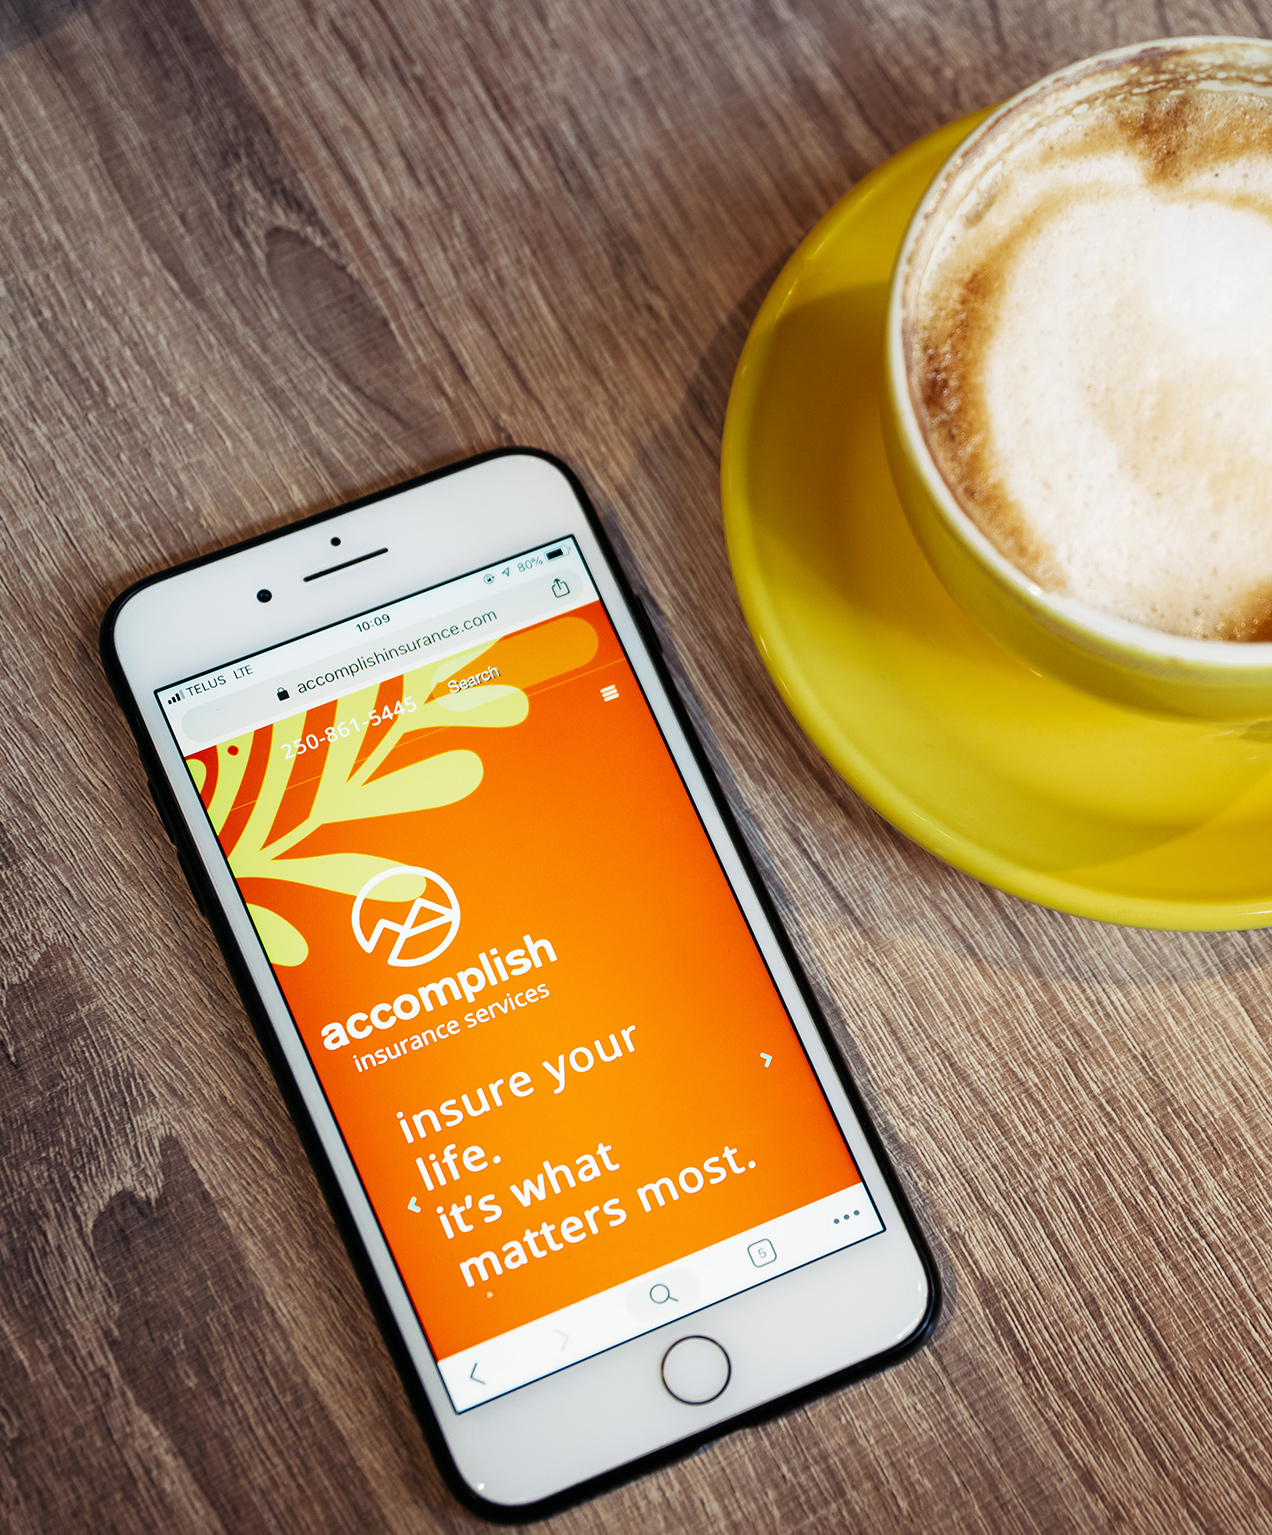 financial services marketing accomplish insurance website on mobile